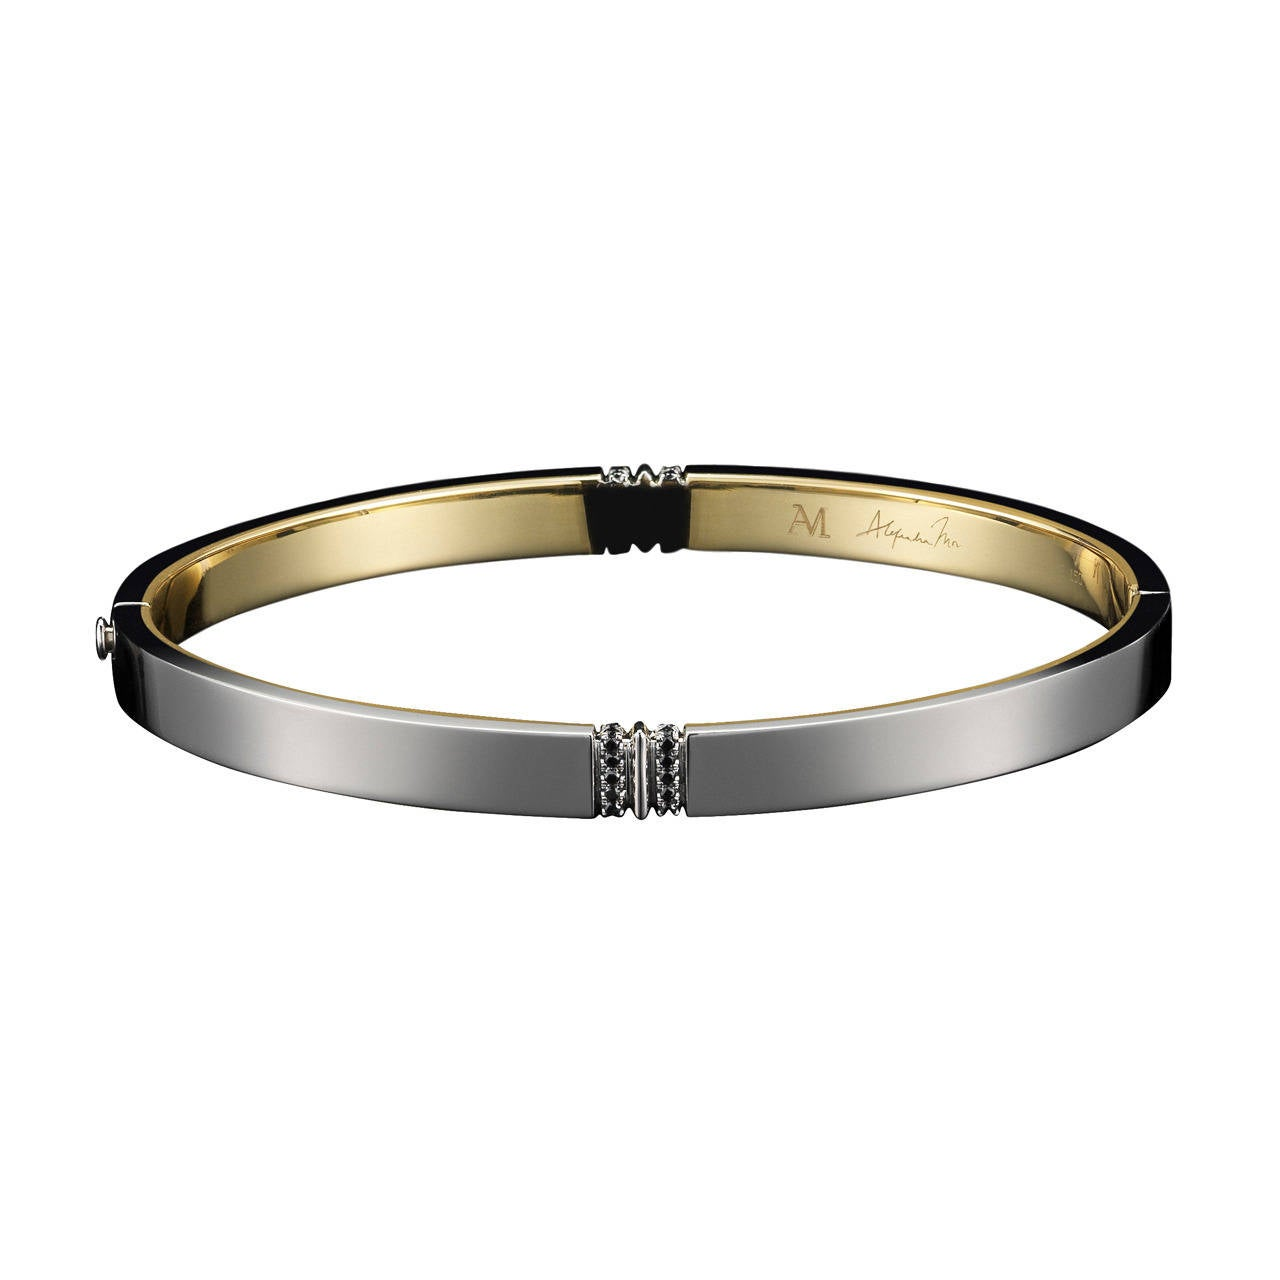 Alexandra Mor Oval-Shaped Narrow Black Diamond Gold Platinum Cuff